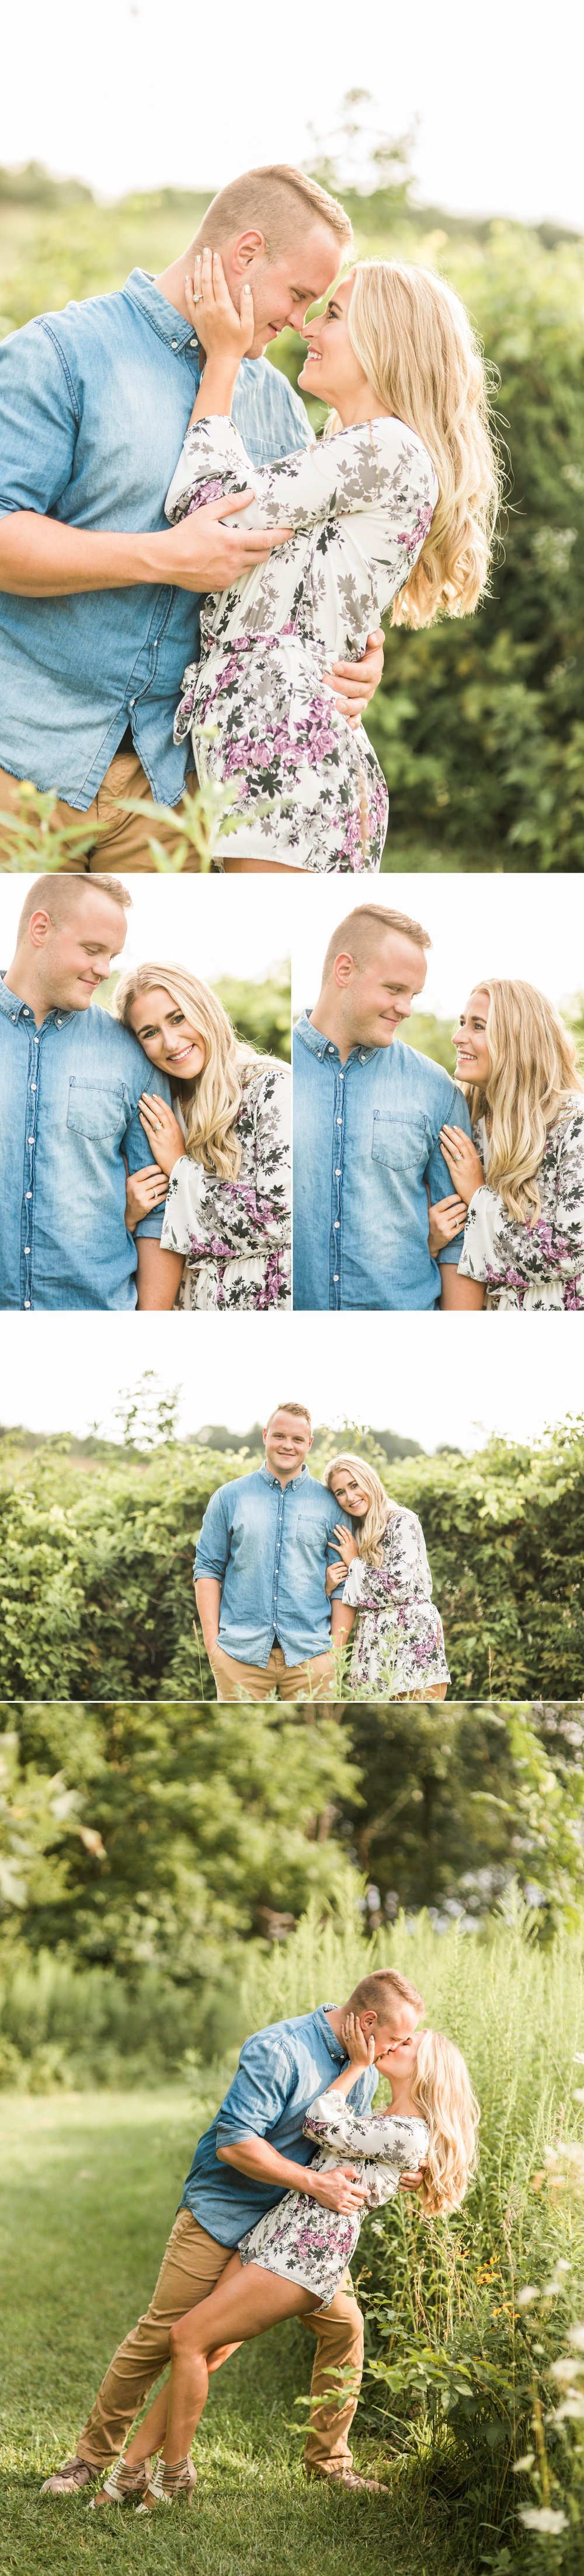 engagement session-field-summer-love-flowers-kiss-park-country-fort wayne-indiana